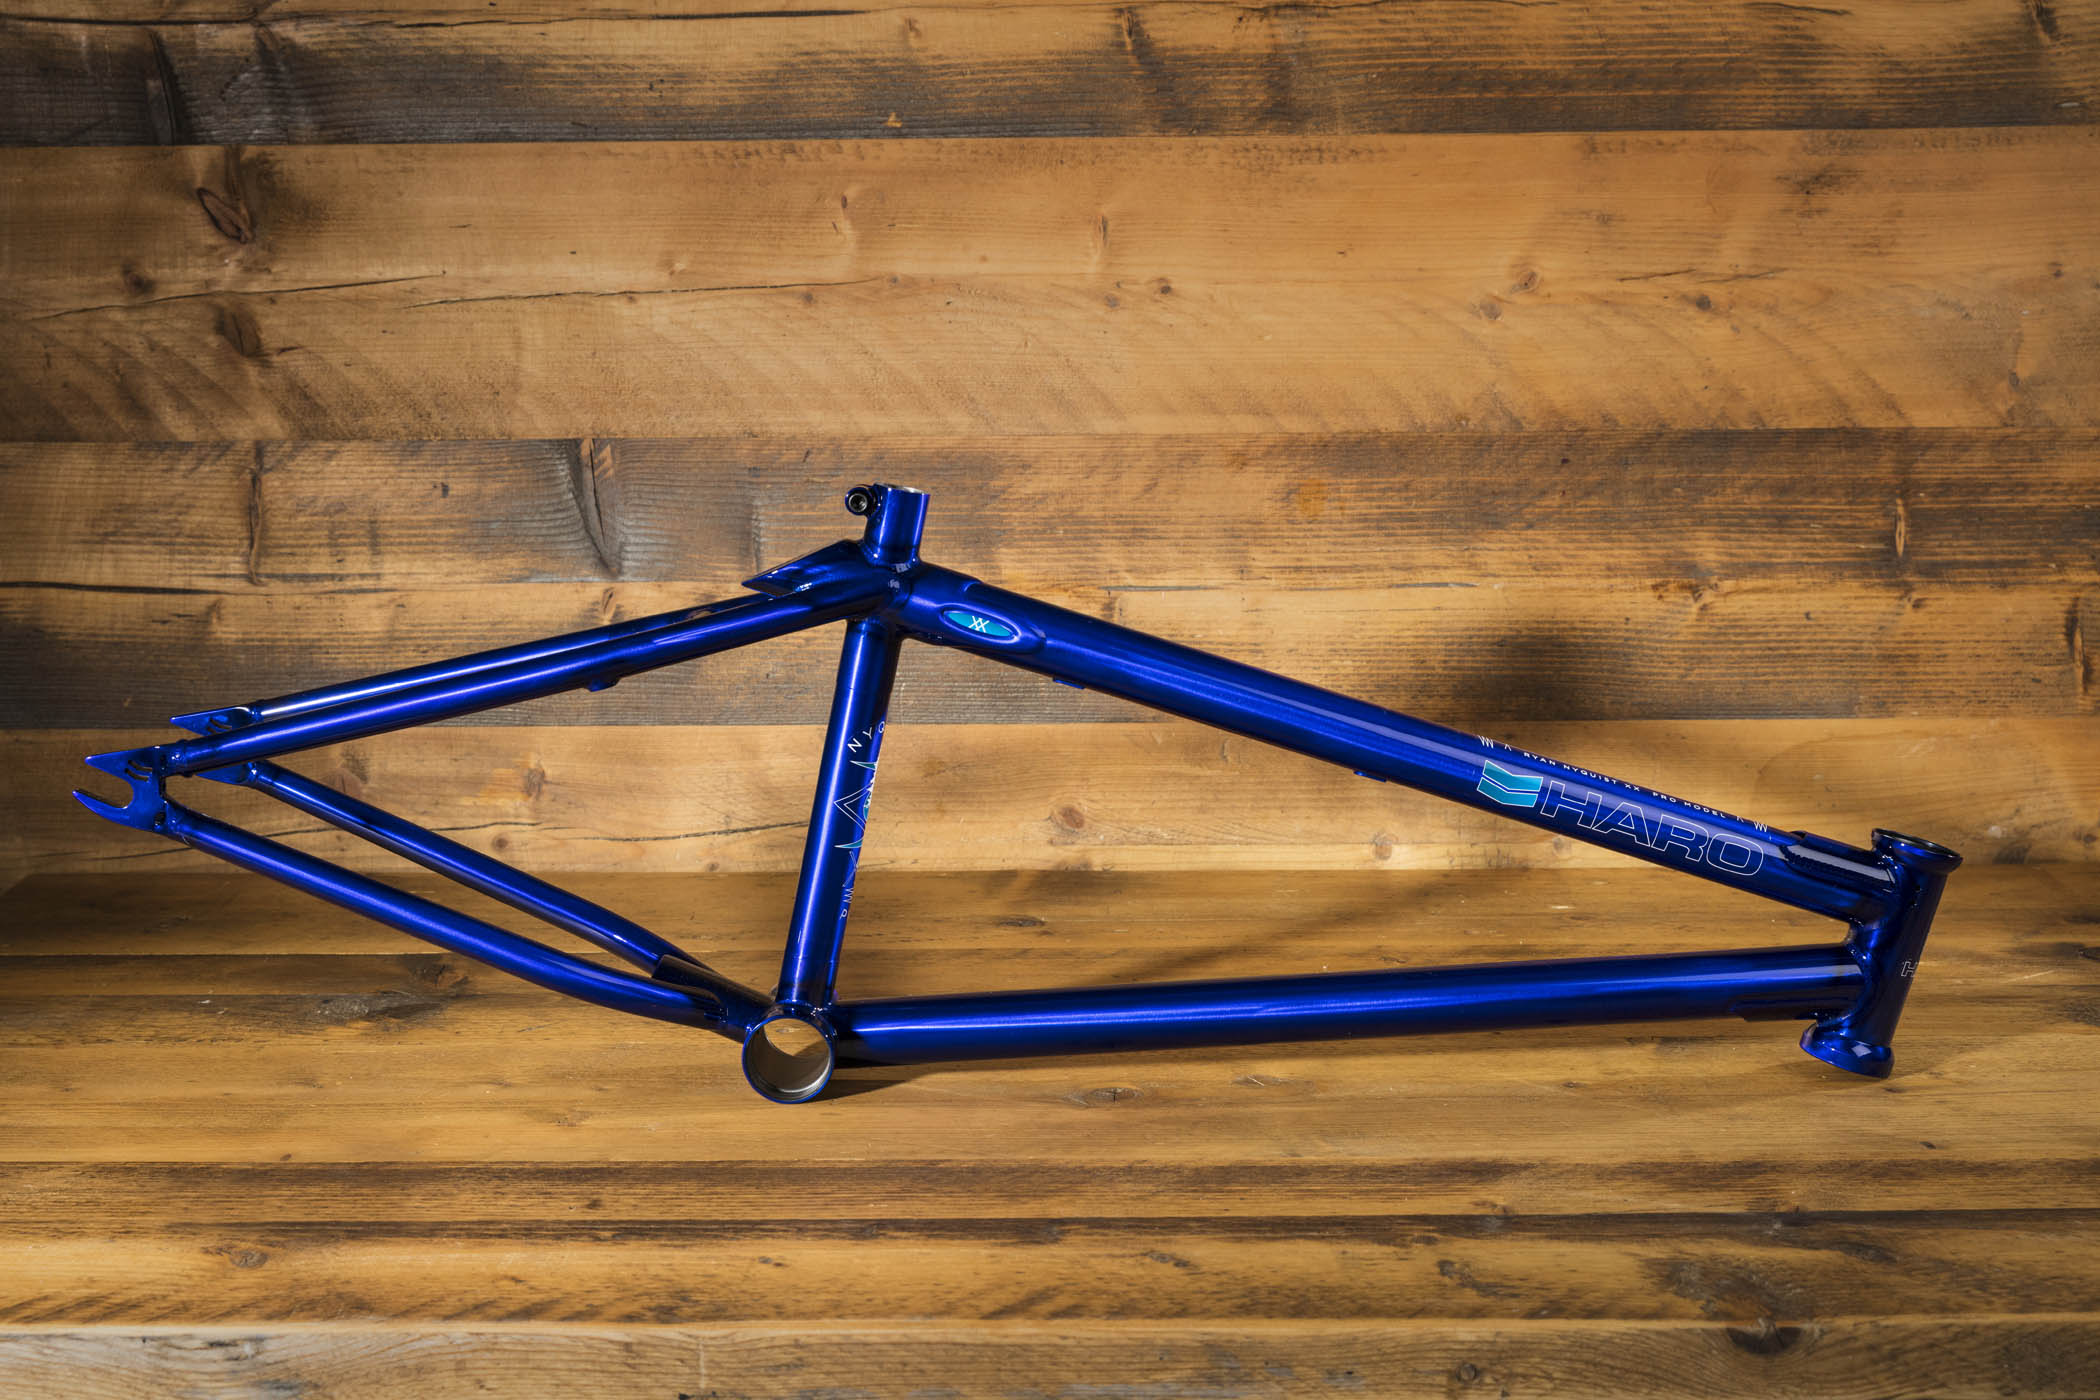 HARO XX NYQUIST FRAME – REVIEW